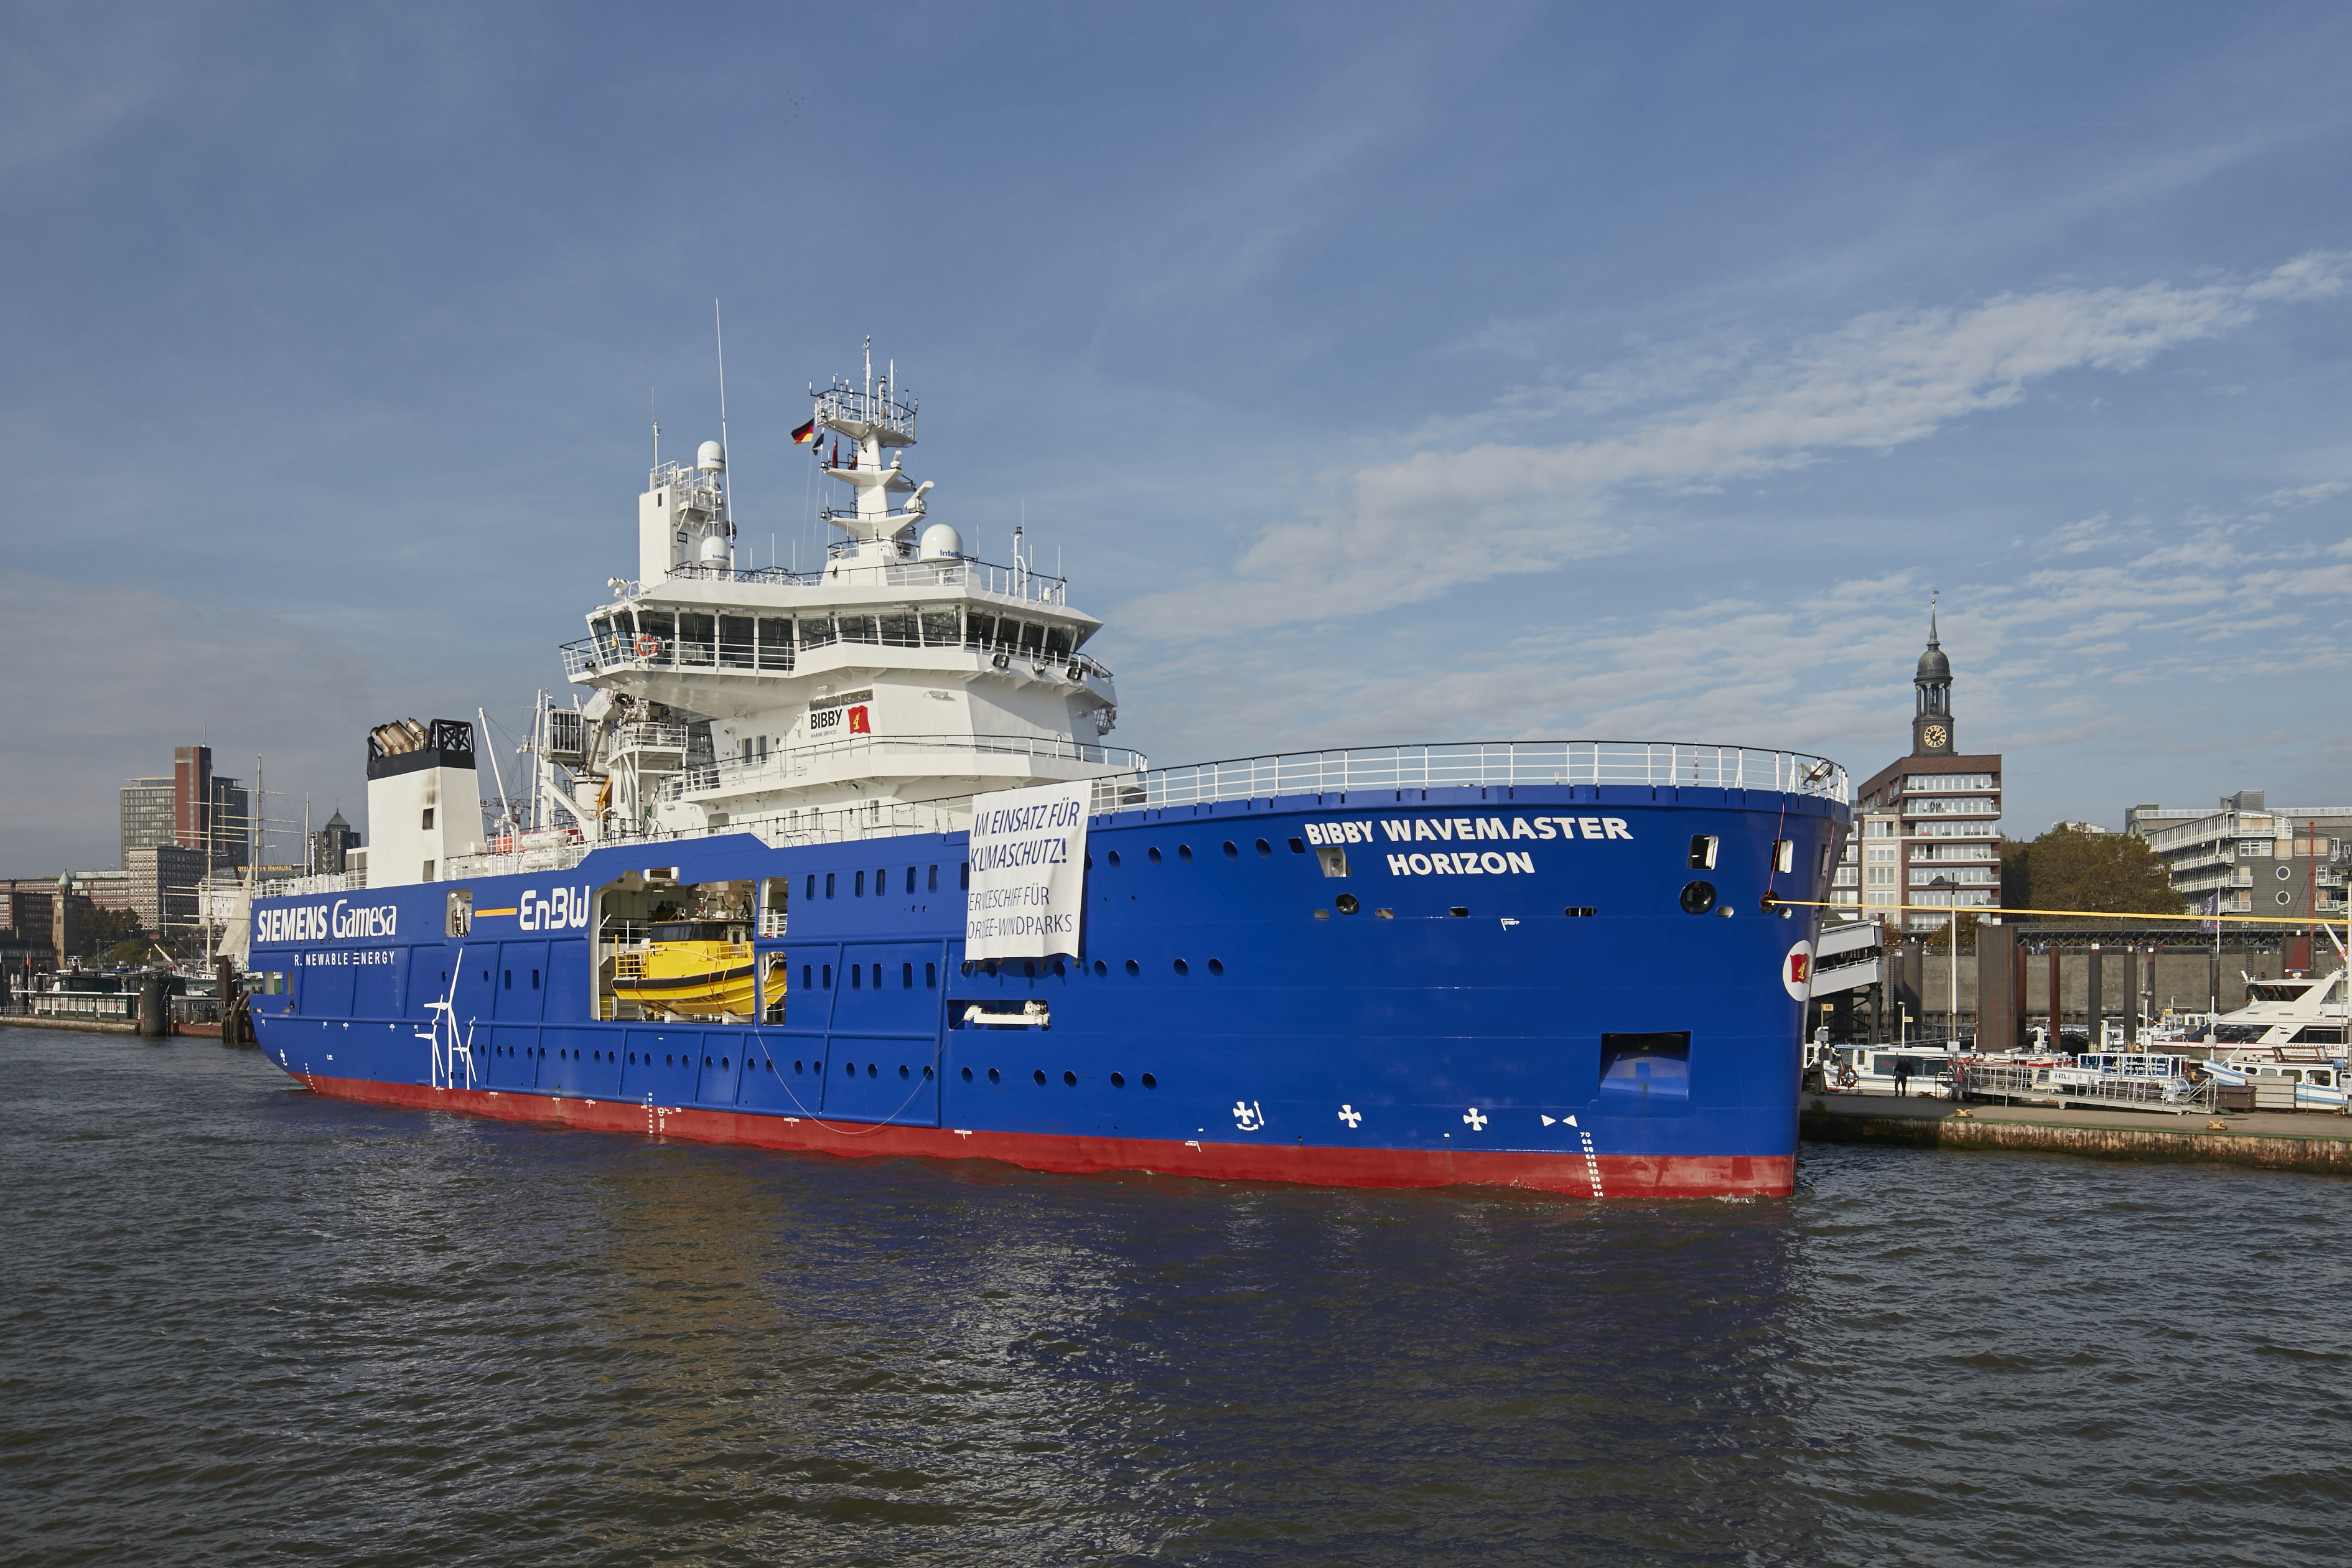 Photo 3: The 90-meter-long special vessel will be used in the future for the smooth operation and maintenance of the two wind power plants, EnBW Hohe See and Albatros, in the North Sea. (Photo: EnBW)